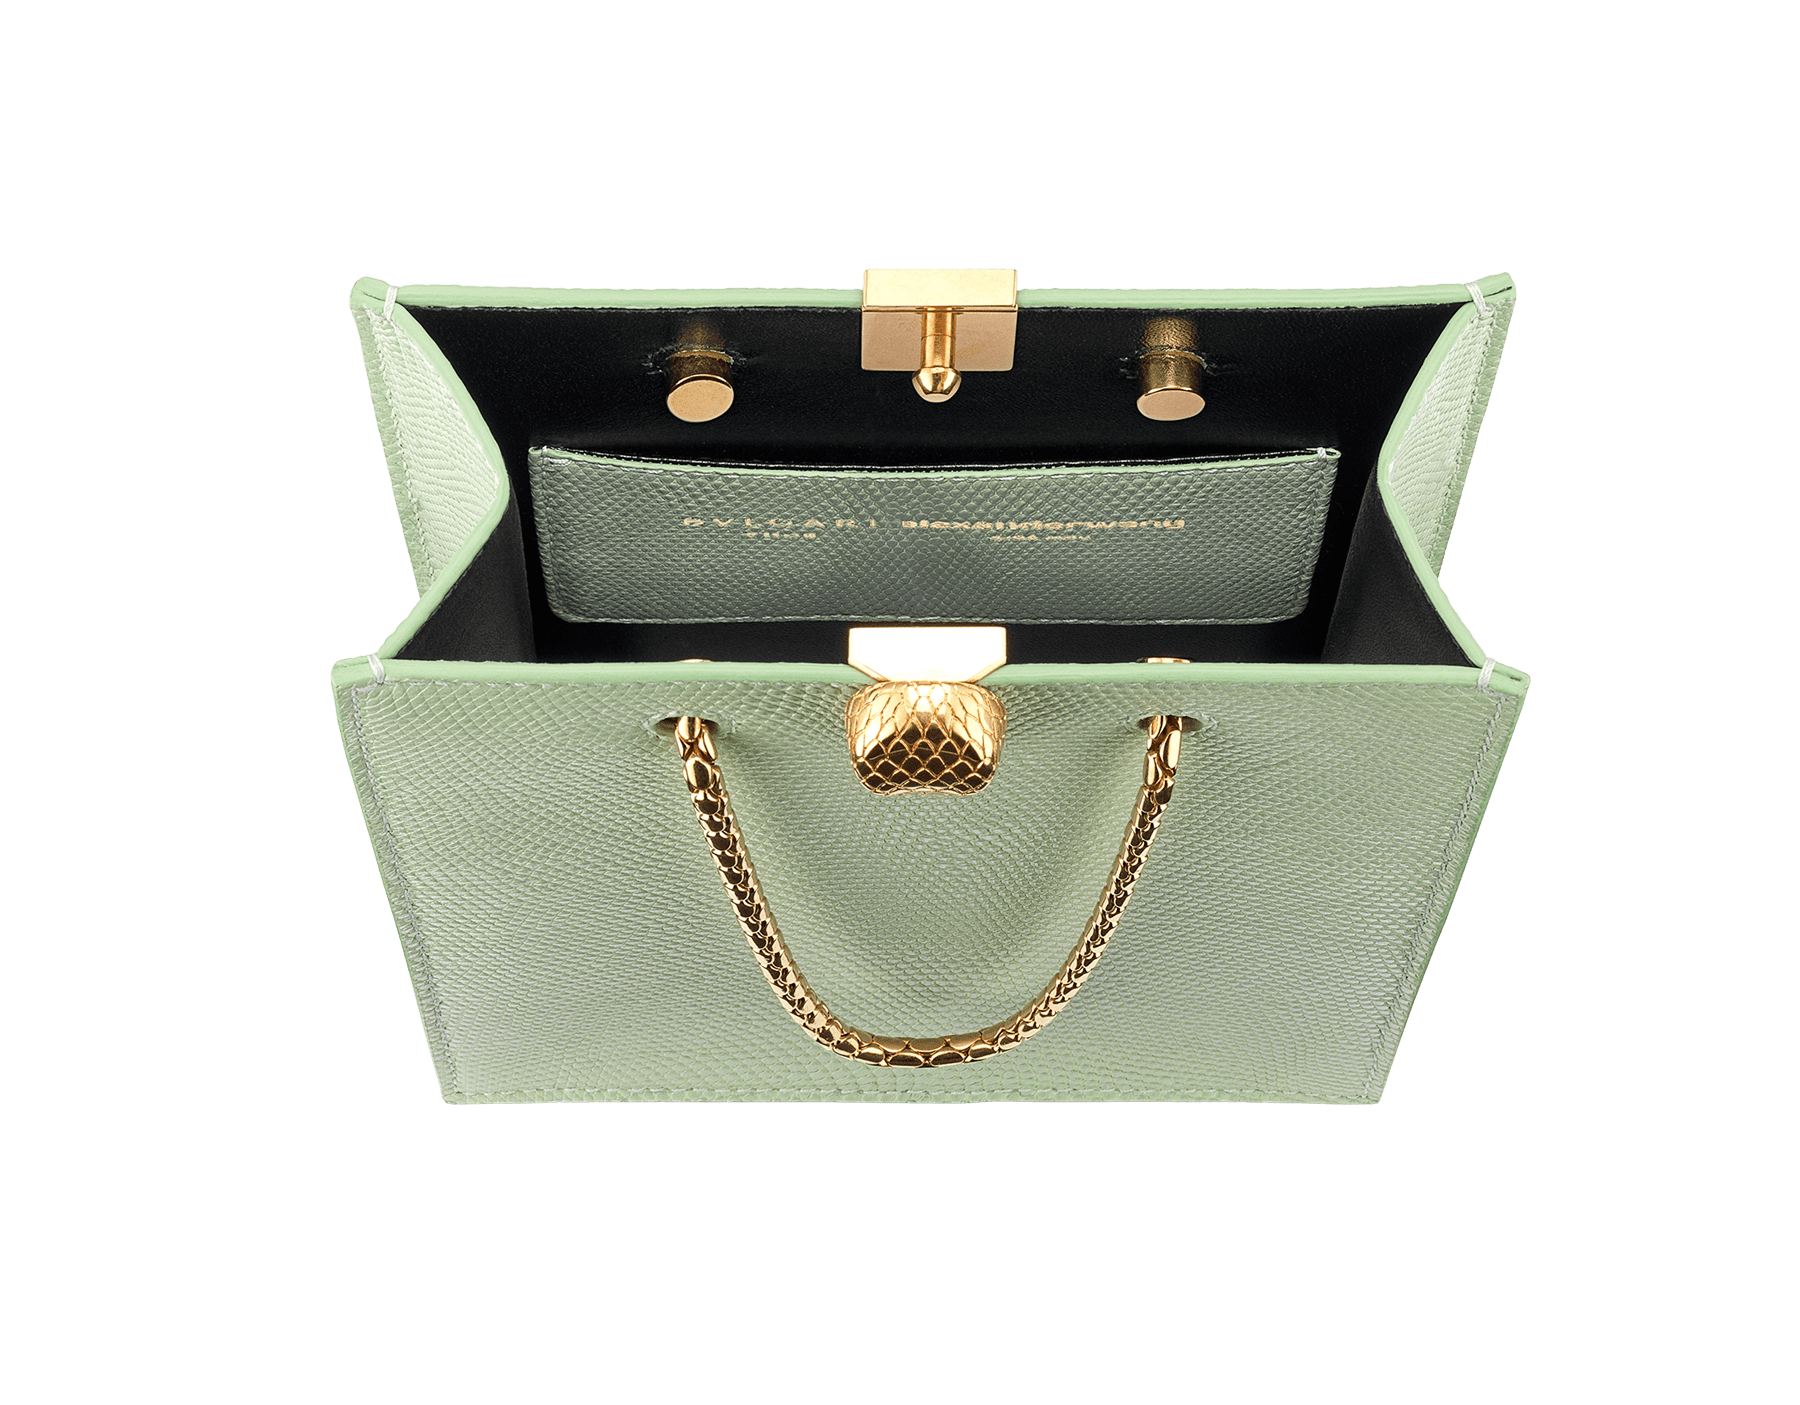 Alexander Wang x Bvlgari mini shopping tote bag in mint lizard skin and black calf leather. New Serpenti head closure in antique gold plated brass with tempting red enamel eyes. Limited edition. 288727 image 4